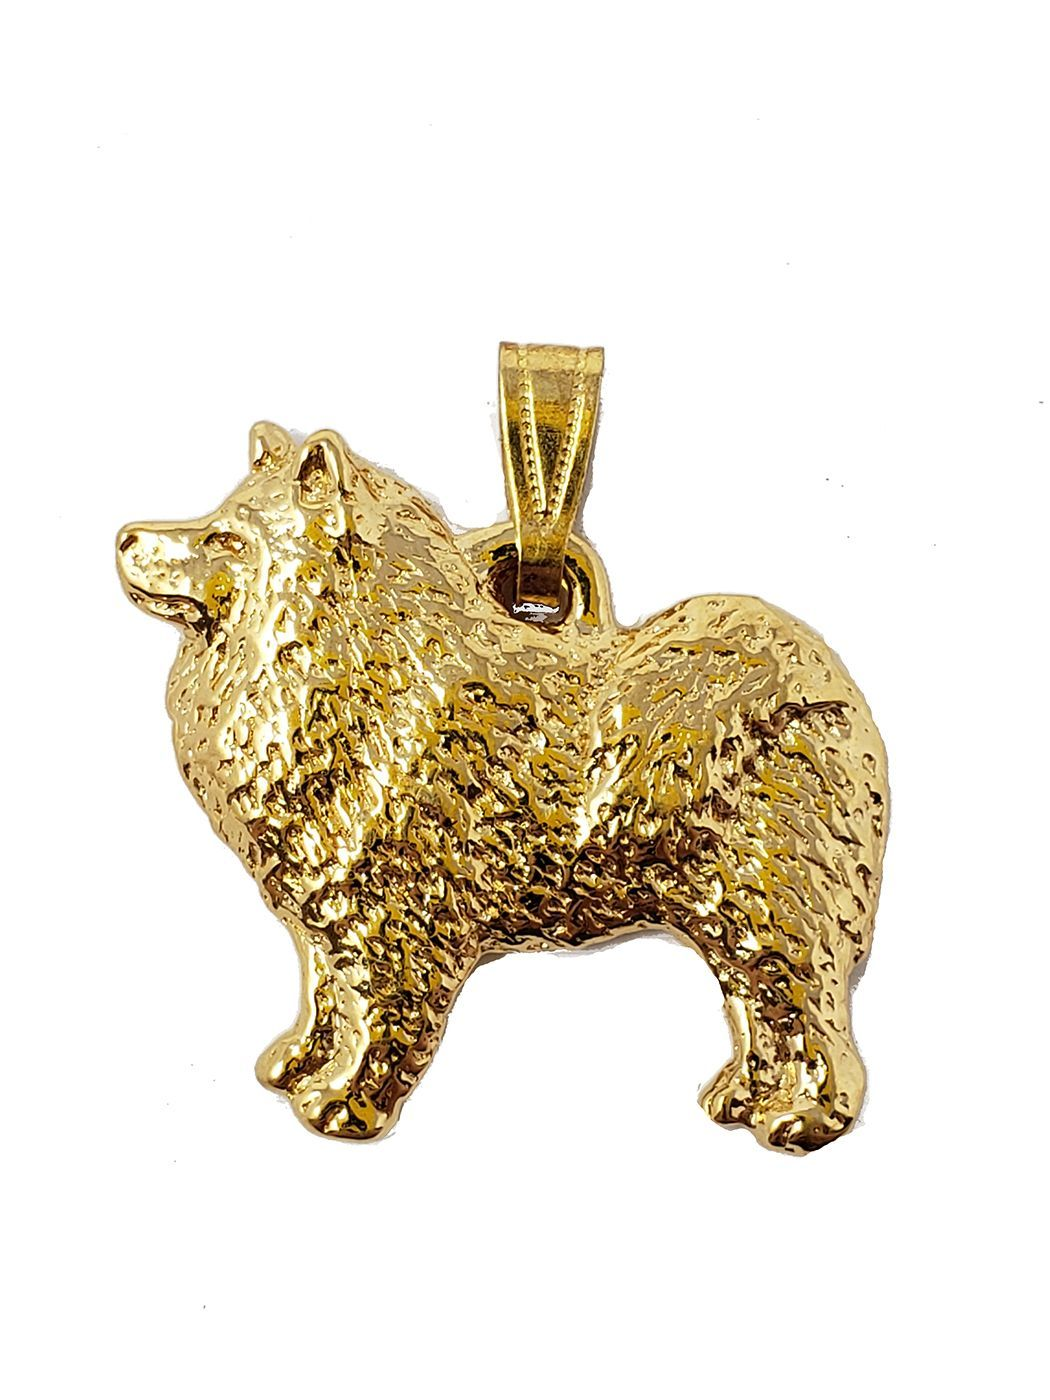 Samoyed 24K Gold Plated Pendant